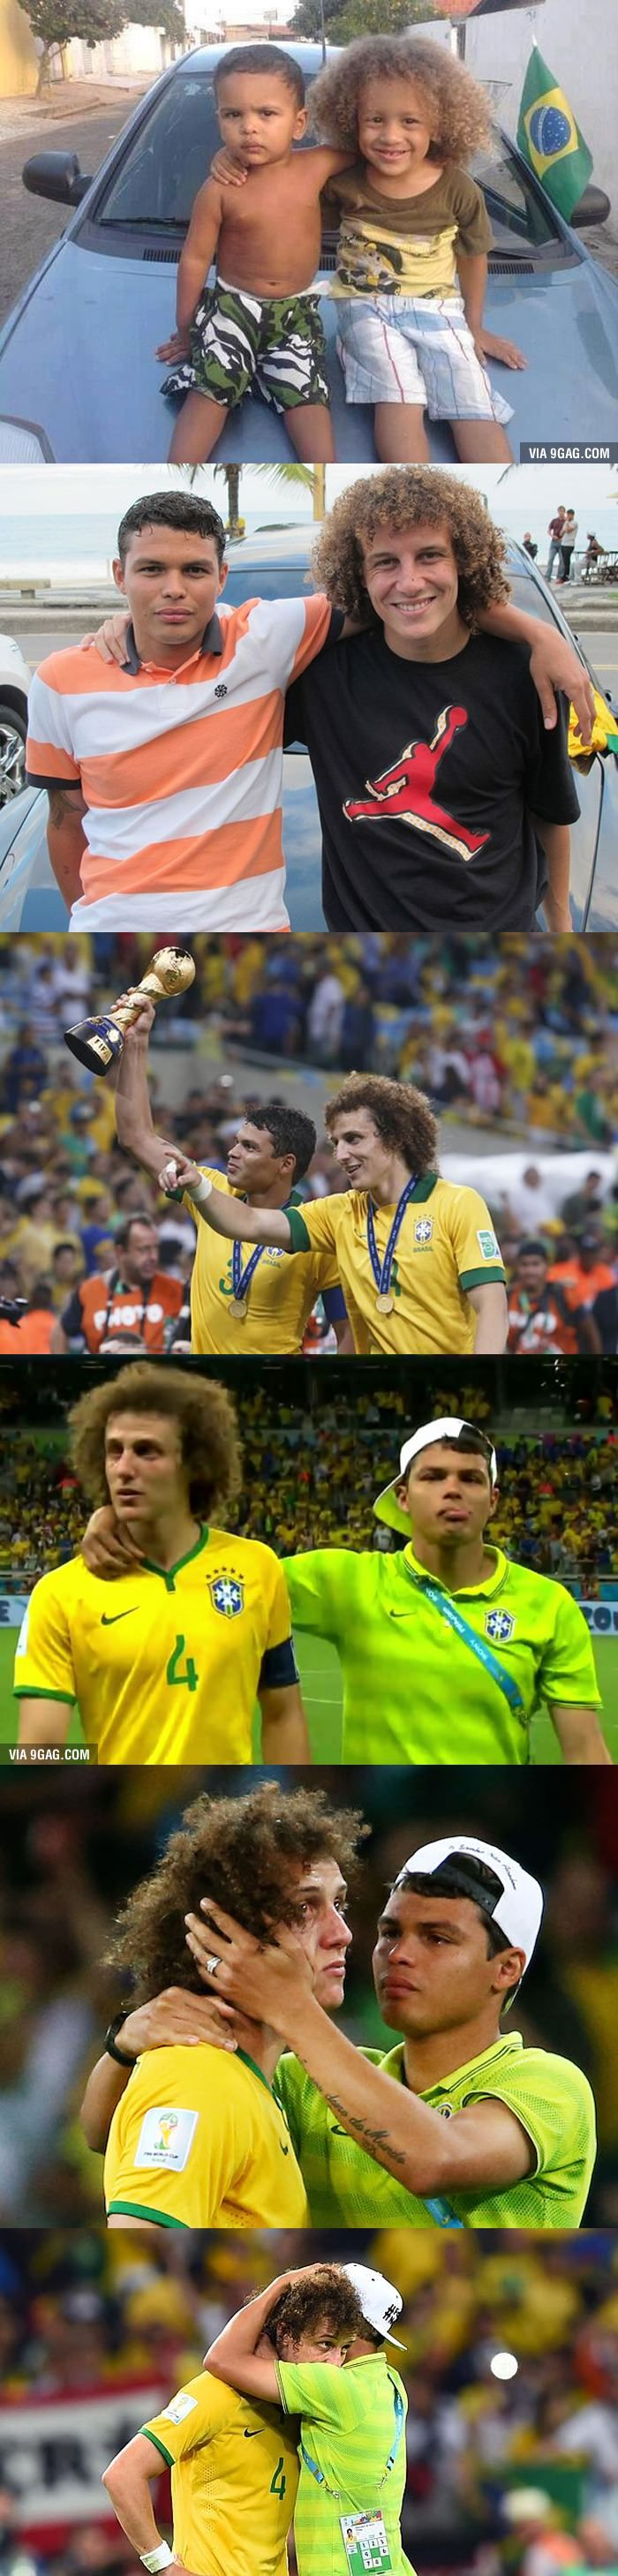 Best Friends: Thiago Silva And David Luiz